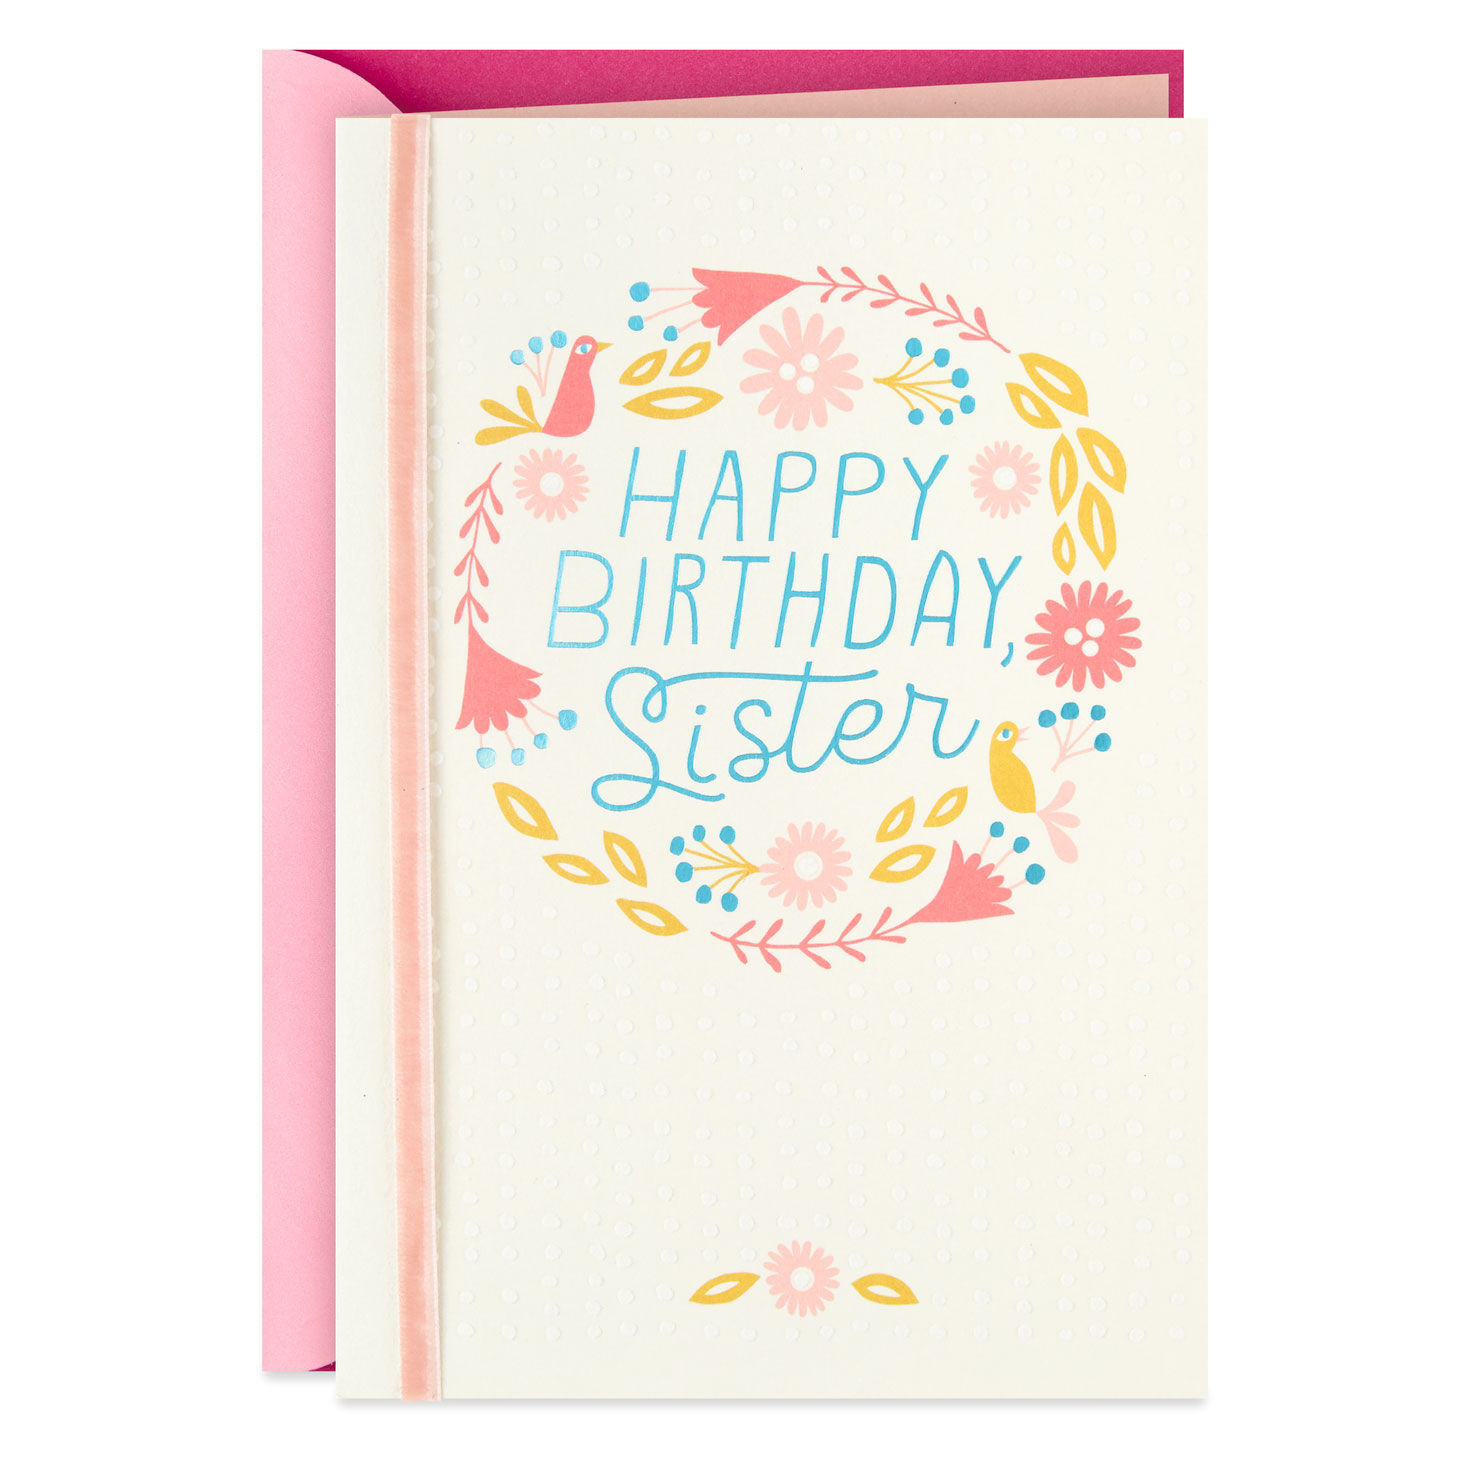 Wishing You Happiness Birthday Card For Sister Greeting Cards Hallmark